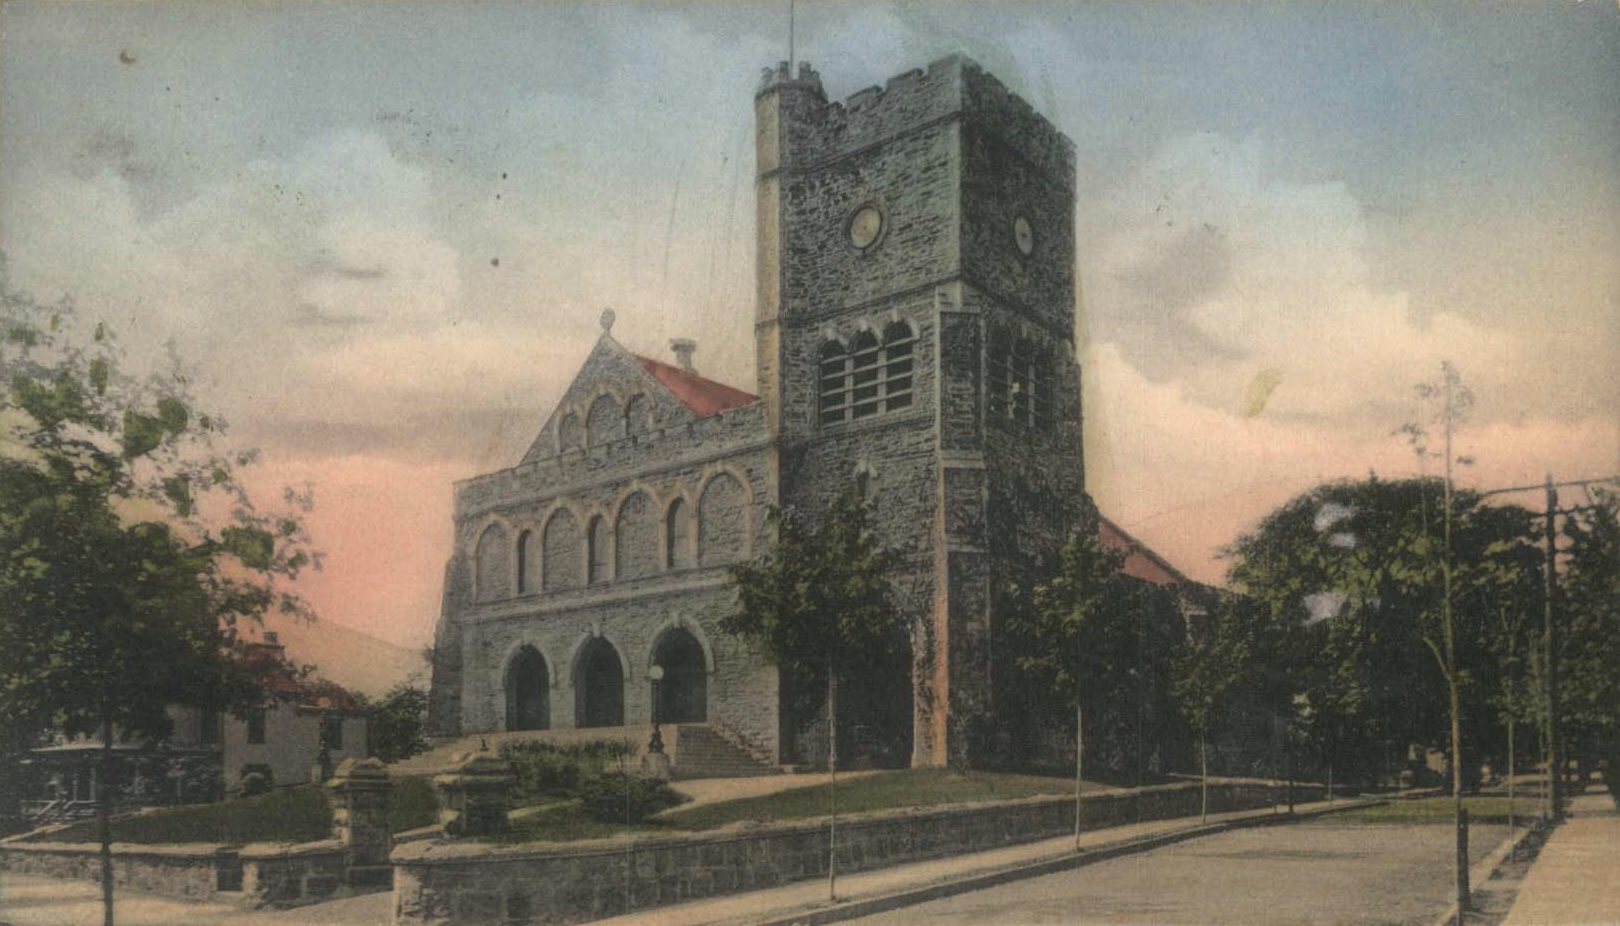 St. Peter's Episcopal Church, circa 1905.